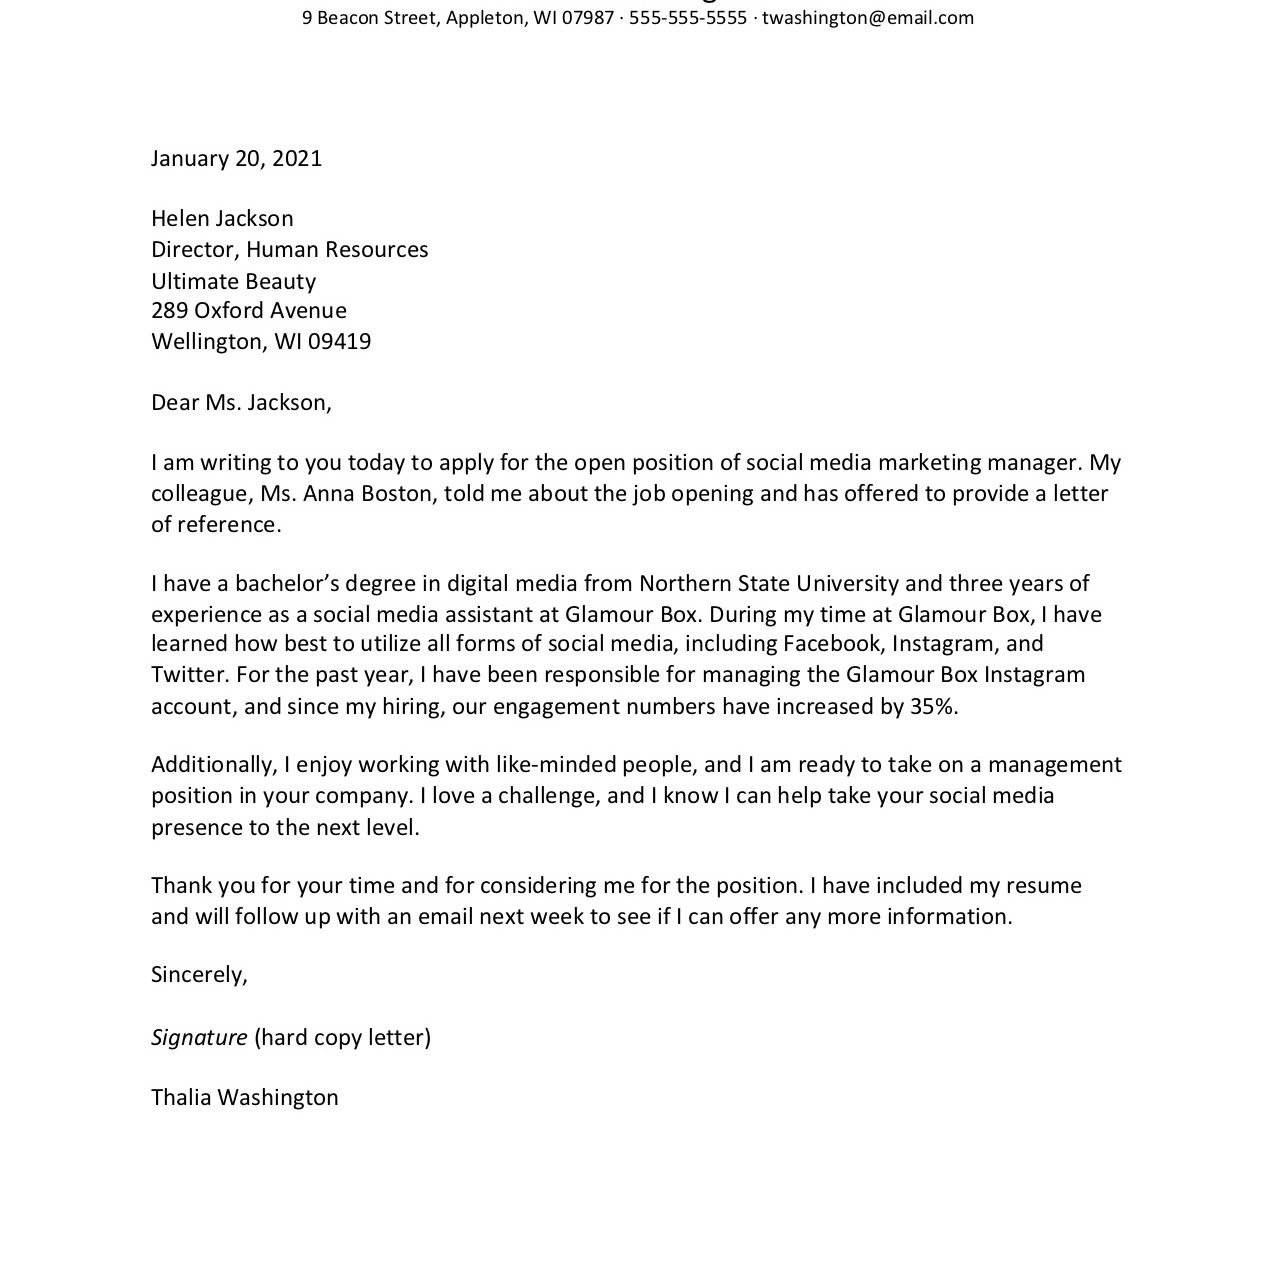 Sample Cover Letter Format Uk Primary Photos Top Rated